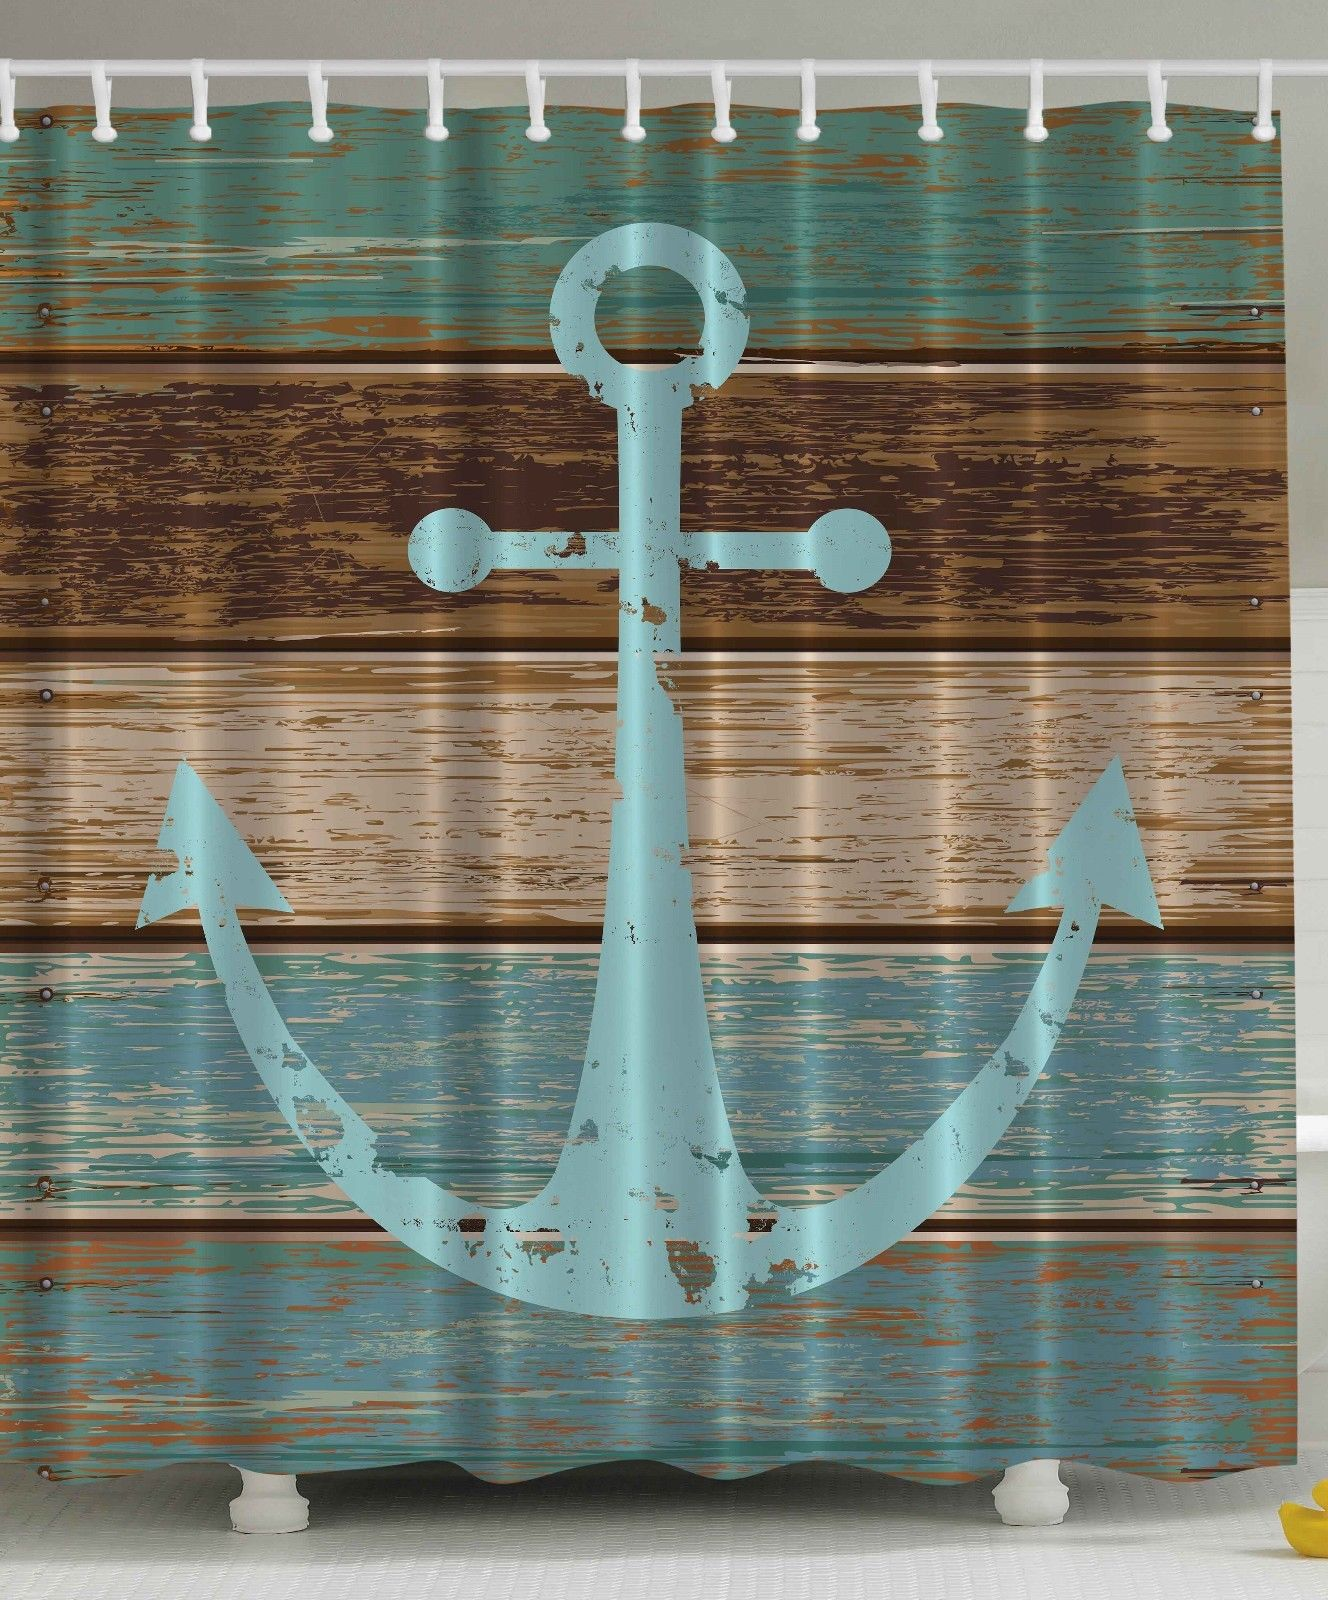 Nautical Anchor Rustic Wooden Planks Shower Curtain Extra Long 84 Inch